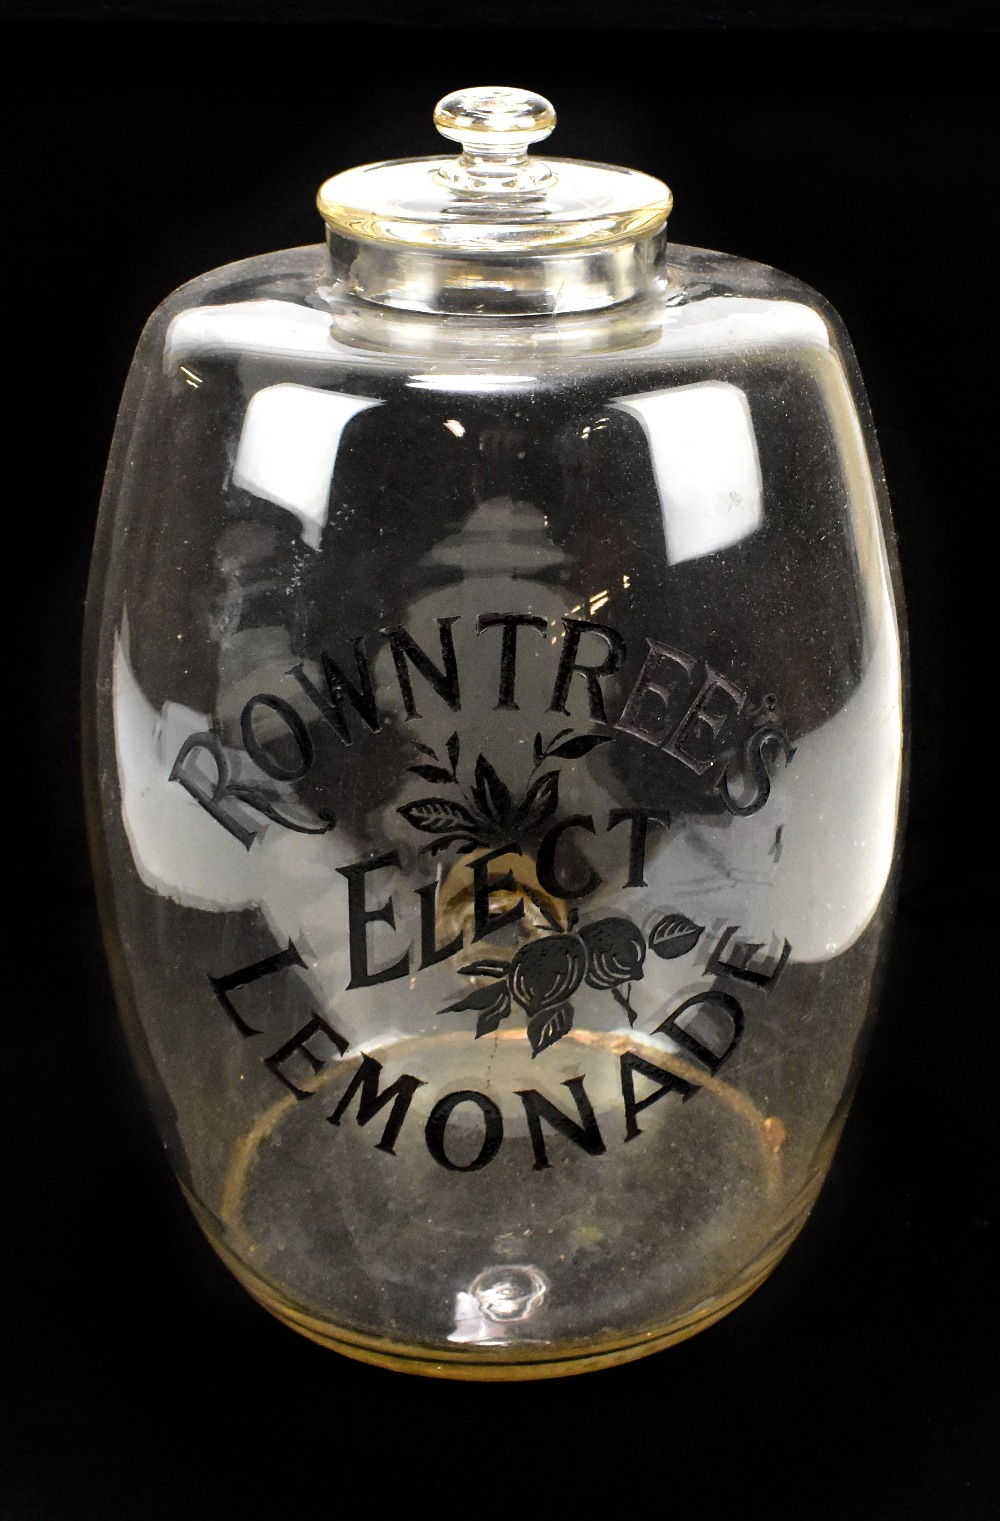 Lot 10 - An advertising Rowntree's Elect Lemonade storage jar with cover, height 36cm.Additional